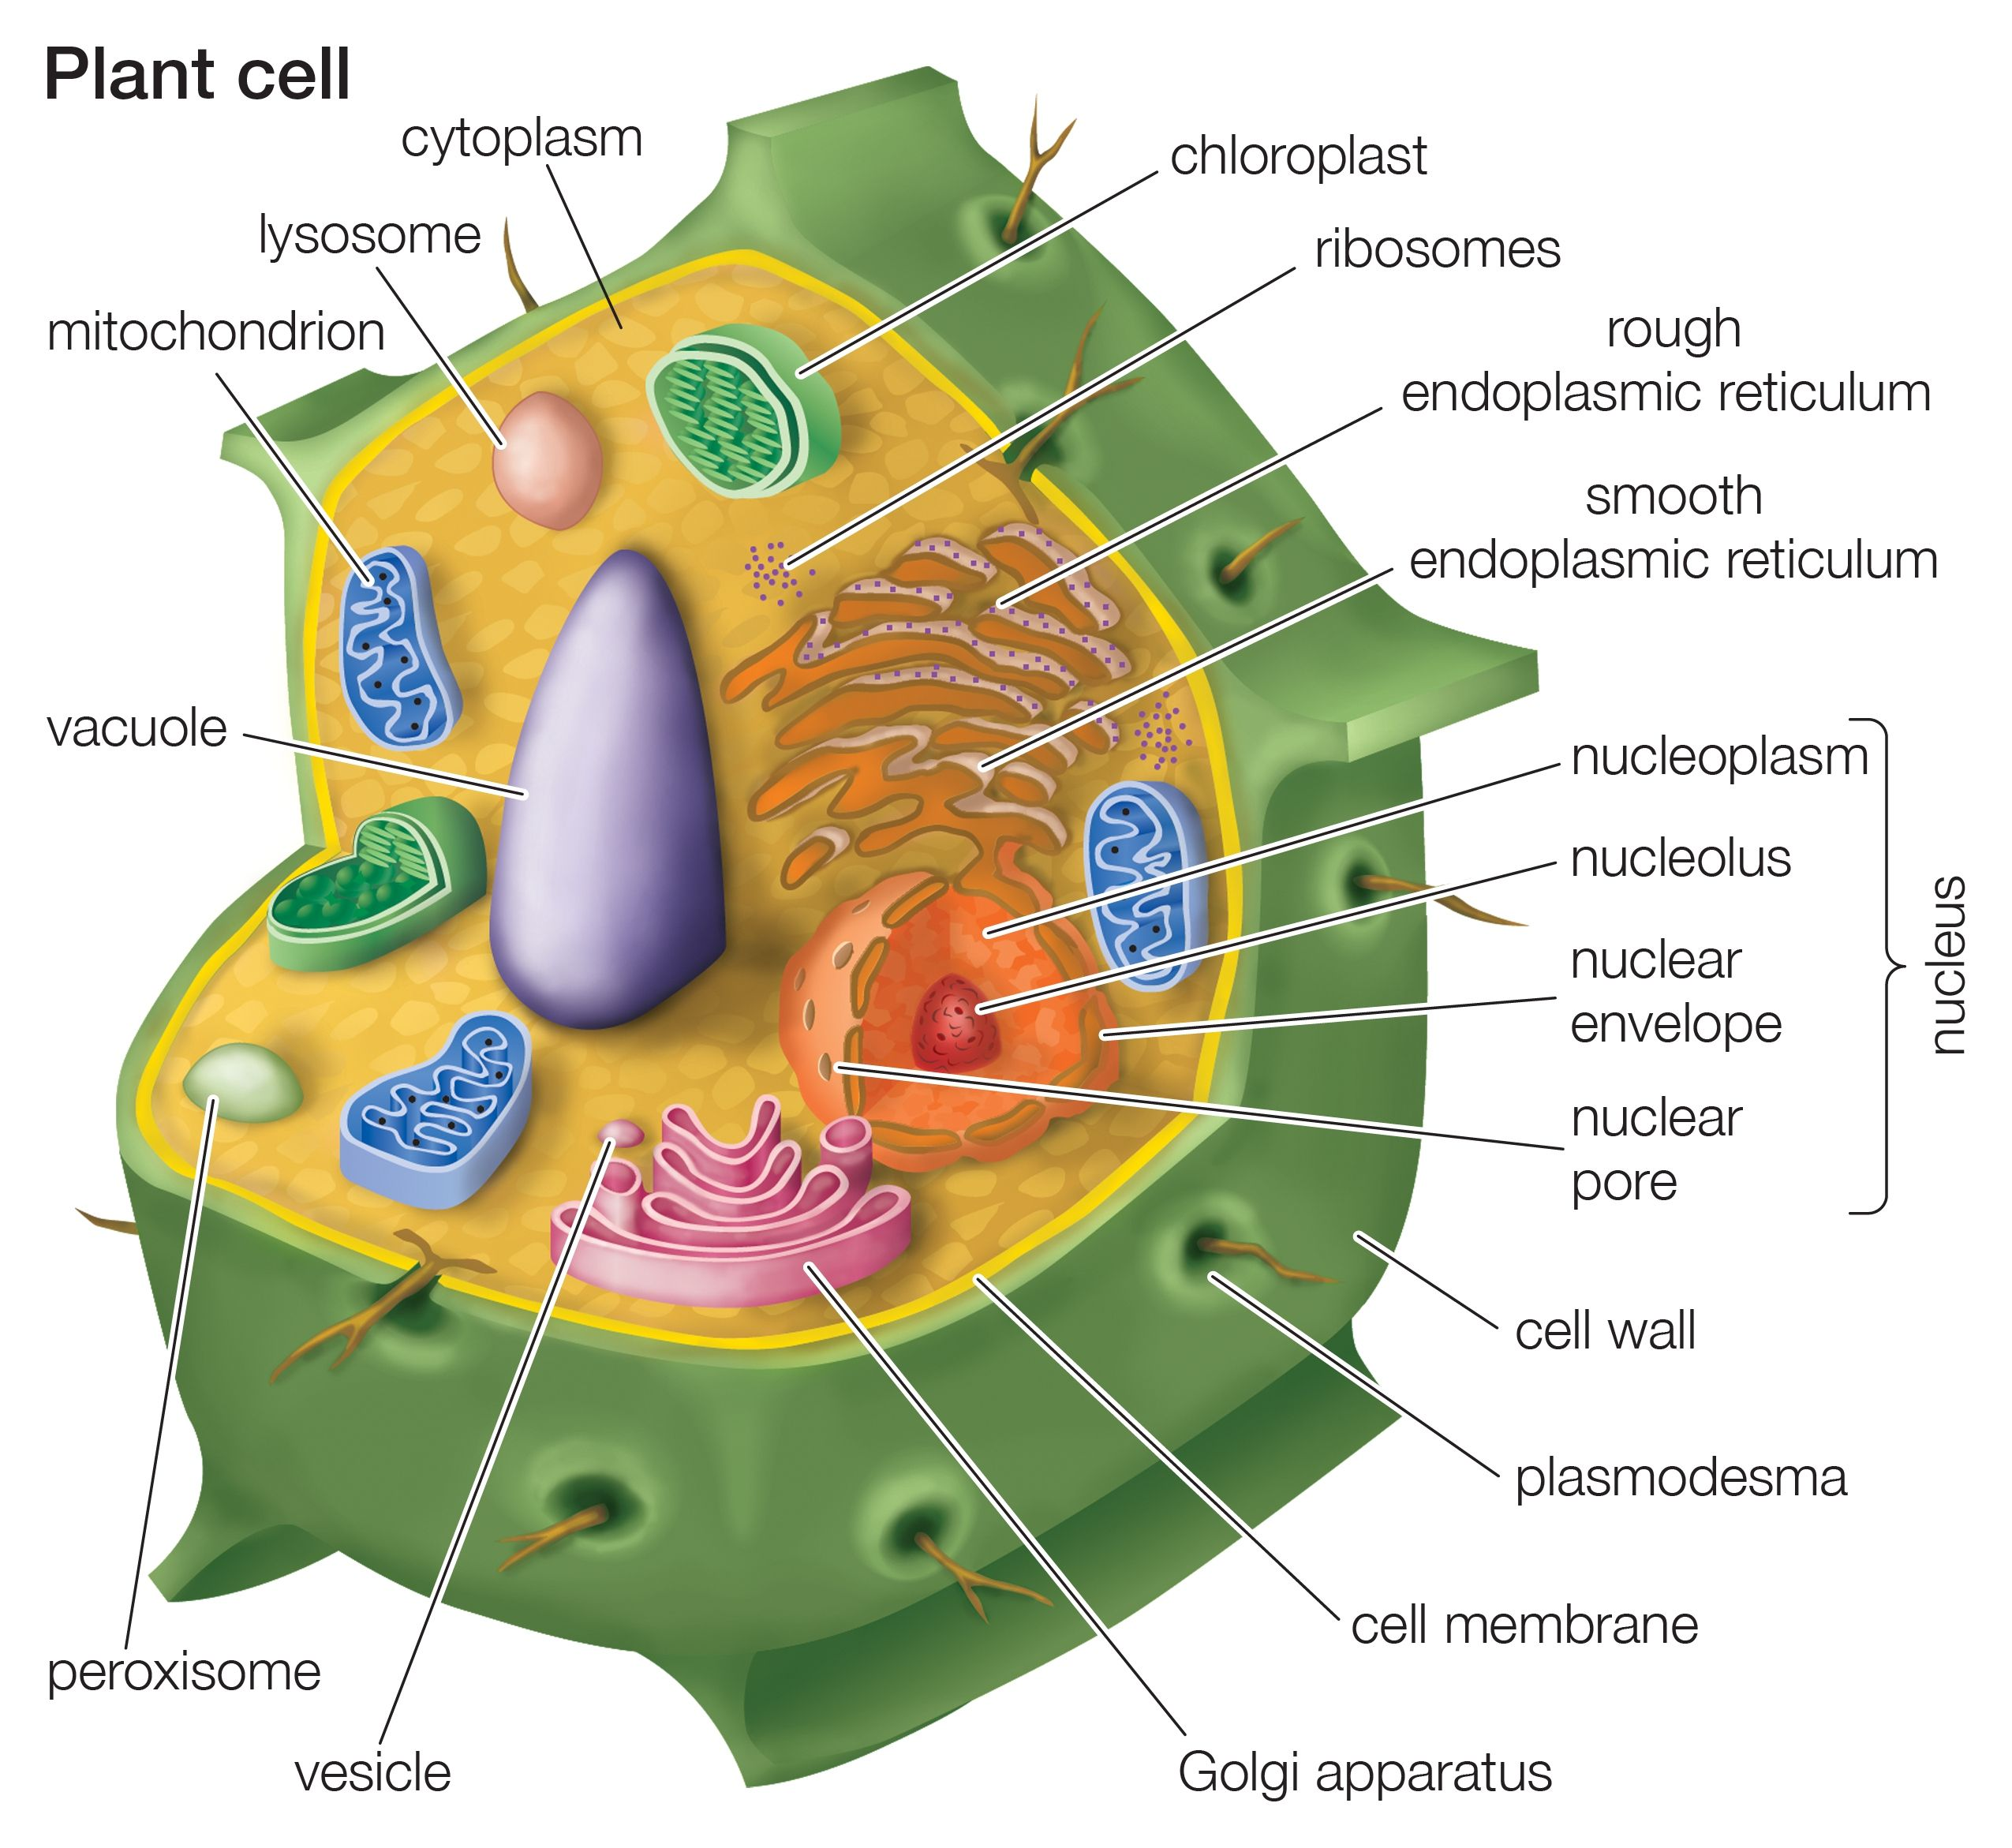 Cutaway drawing of a eukaryotic plant cell.